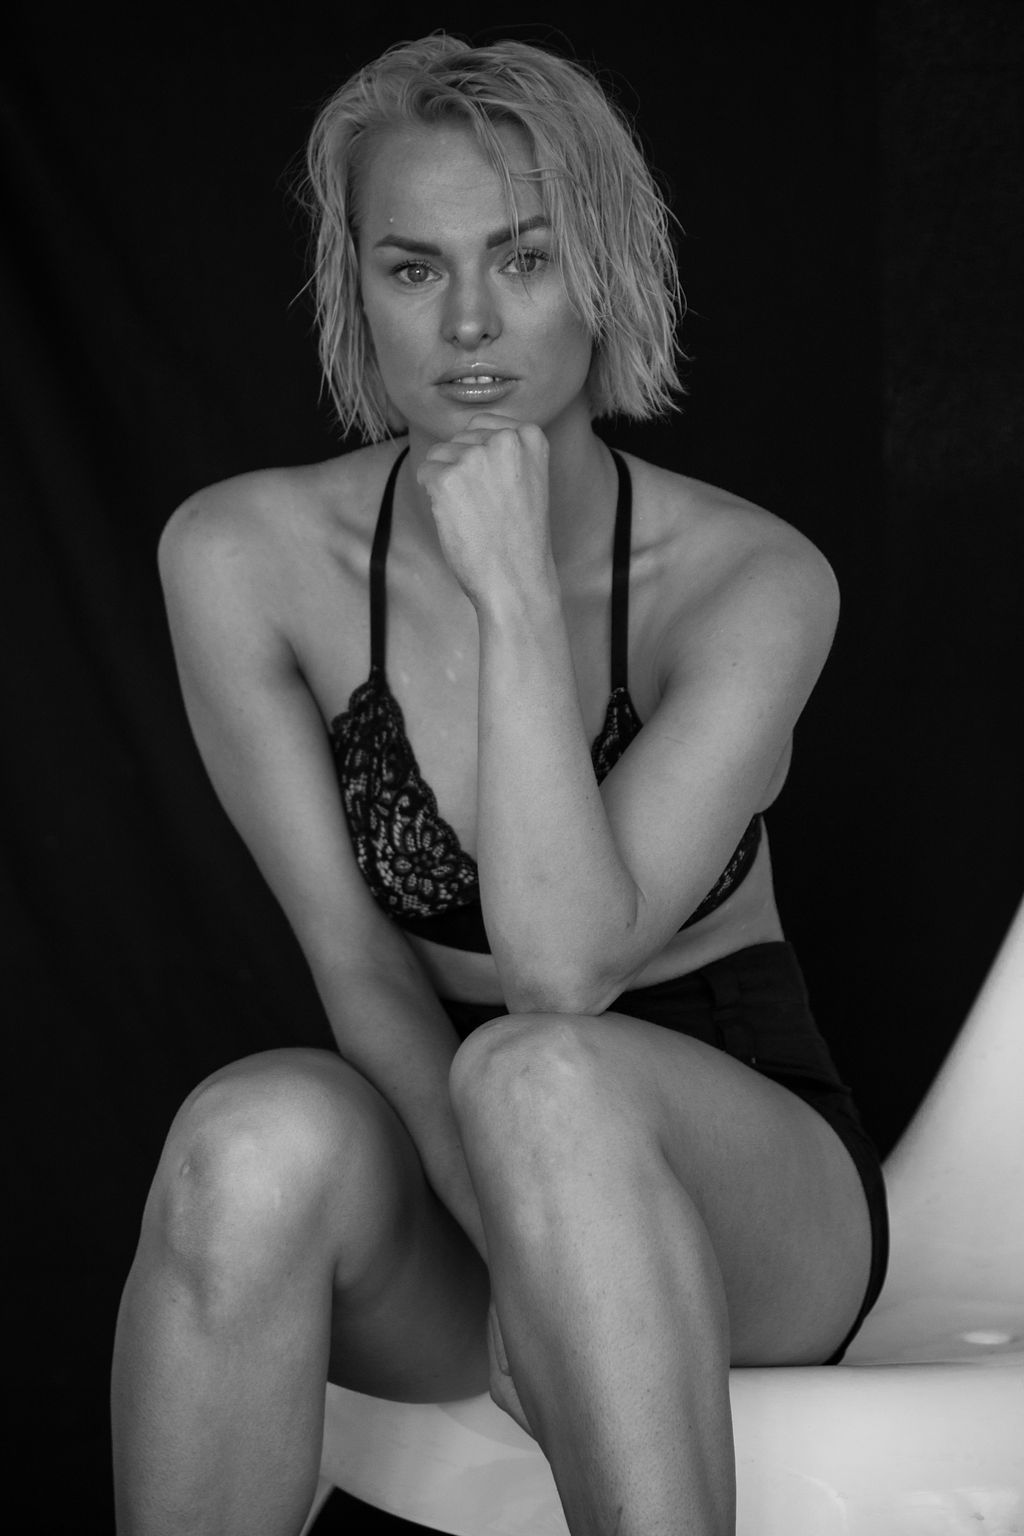 Intimate glamour portrait photography